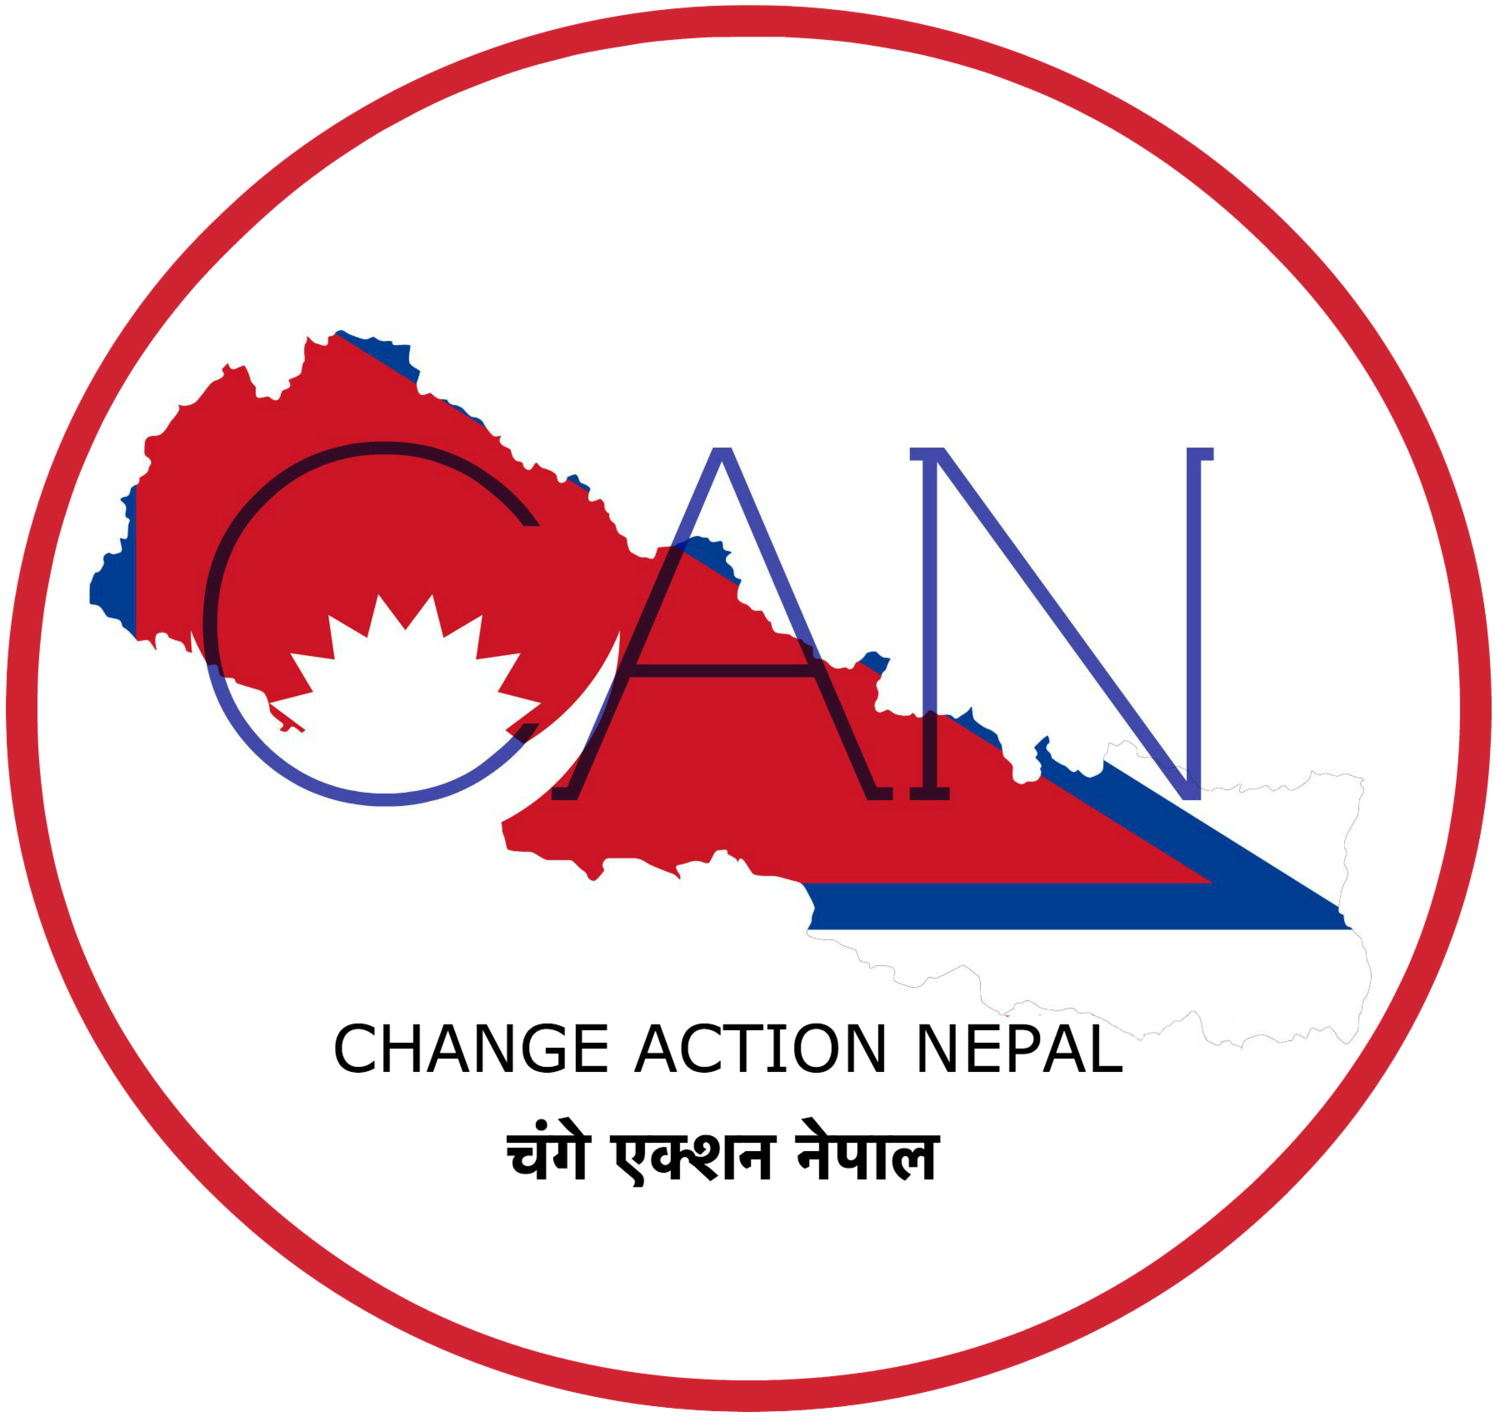 Change Action Nepal